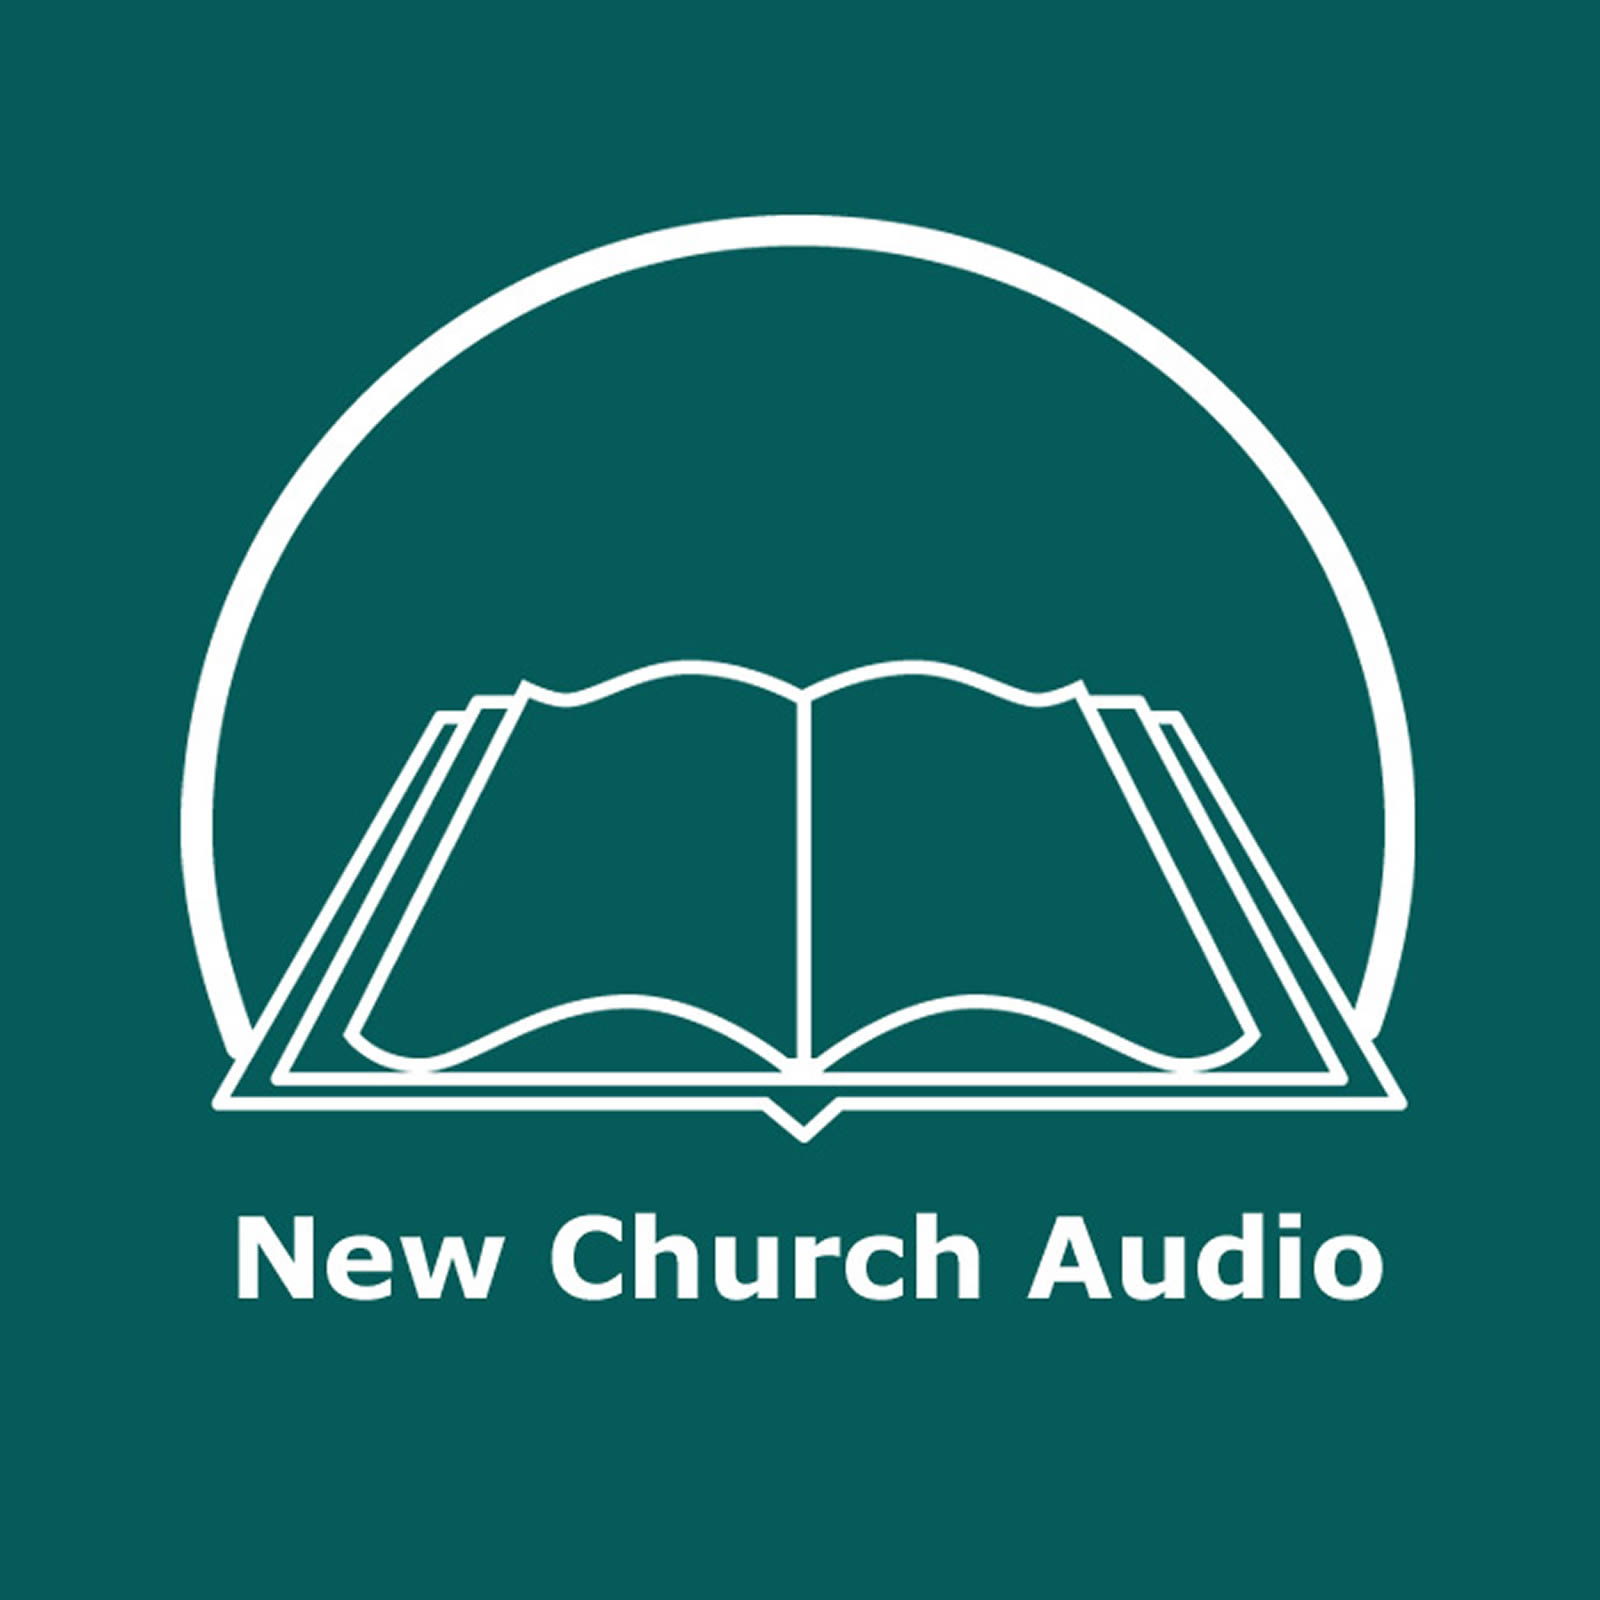 New Church Audio - Recent Events about A New Christianity